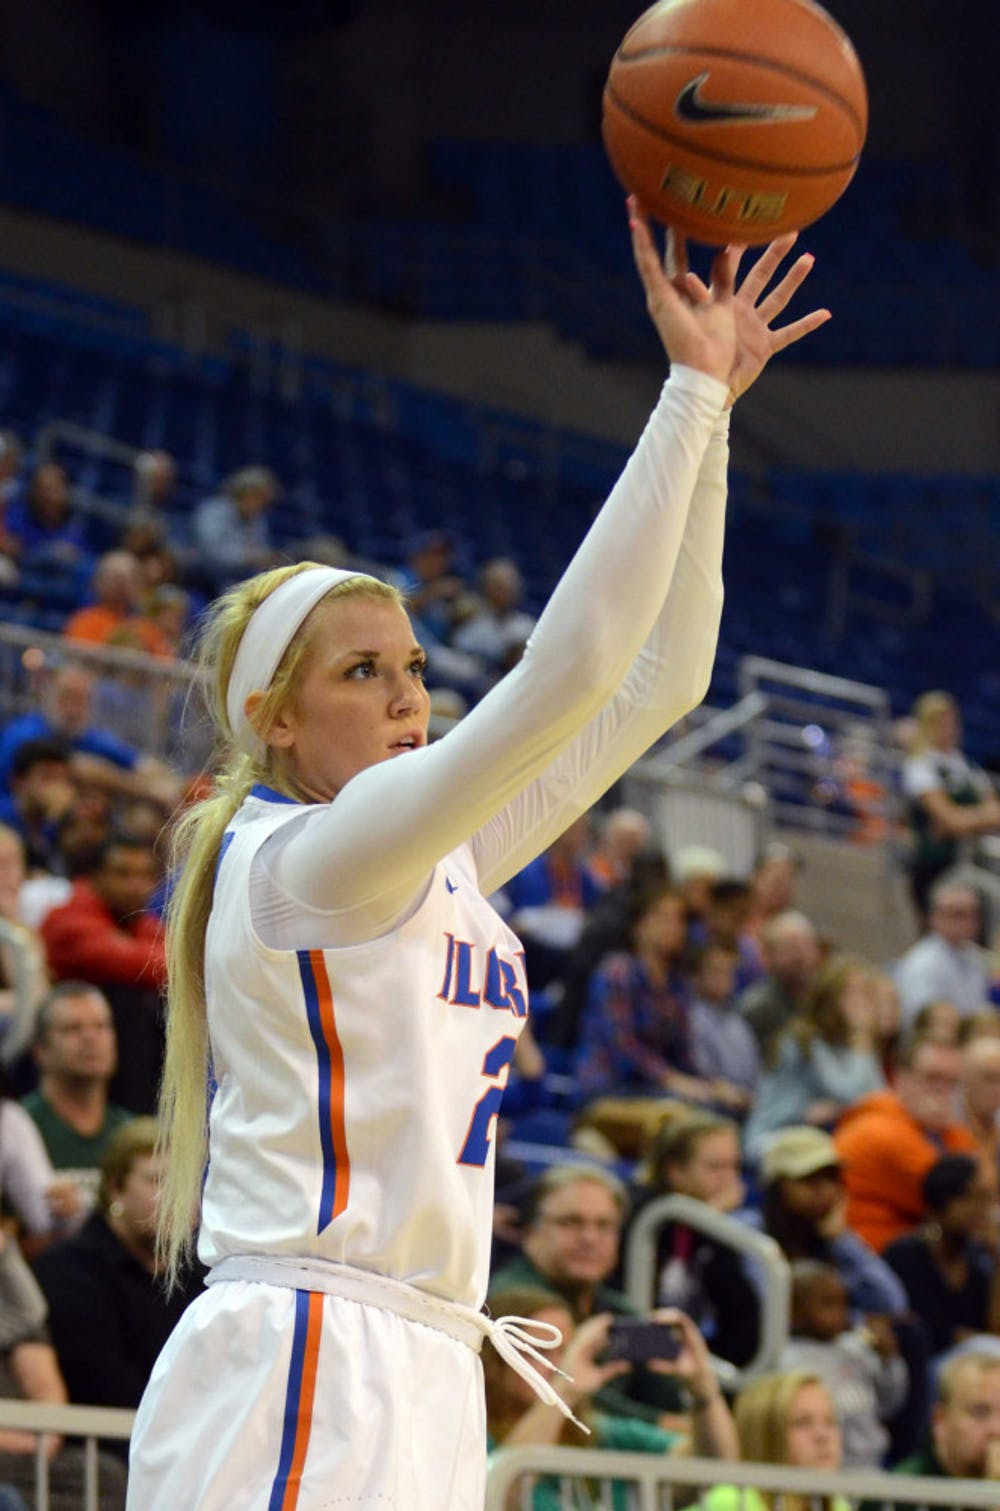 <p>Brooke Copeland attempts a three-point shot during Florida's win against Stetson.</p>